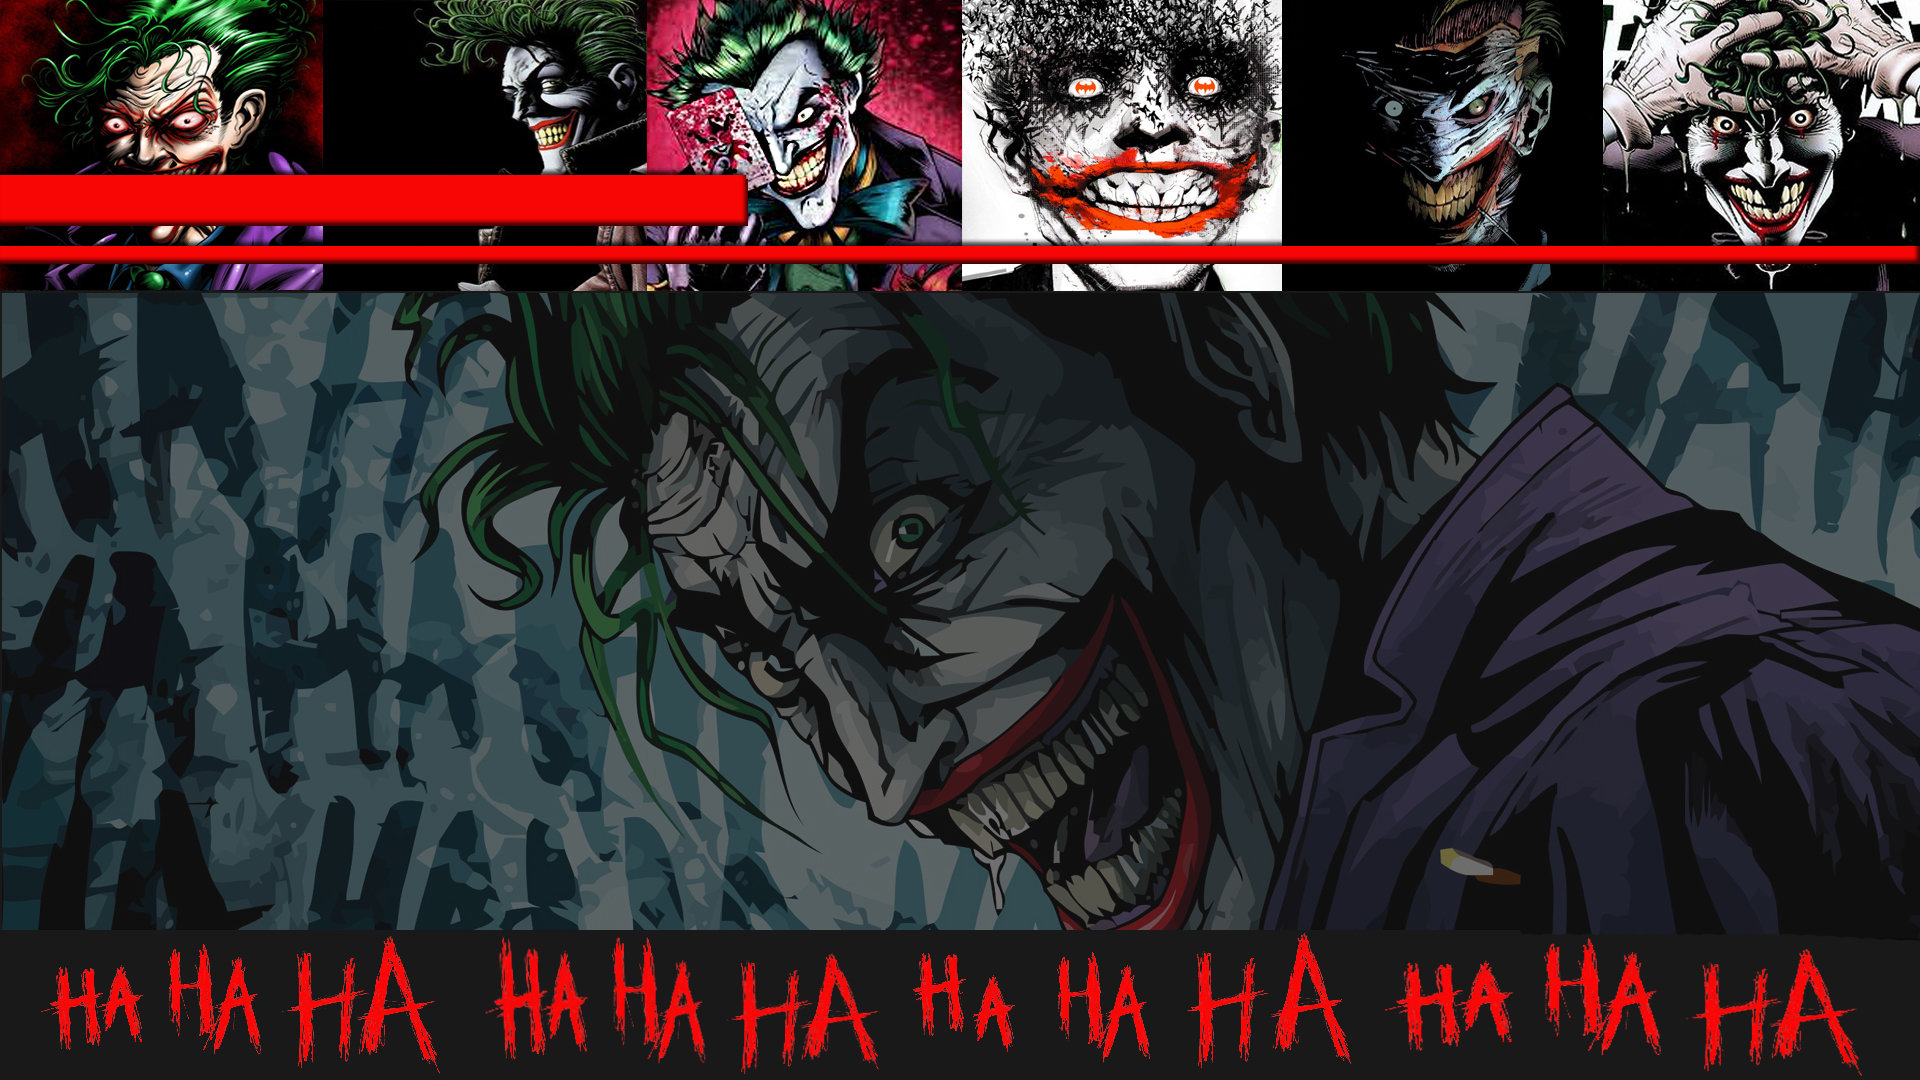 Free download Joker wallpaper ID:131205 hd 1920x1080 for computer